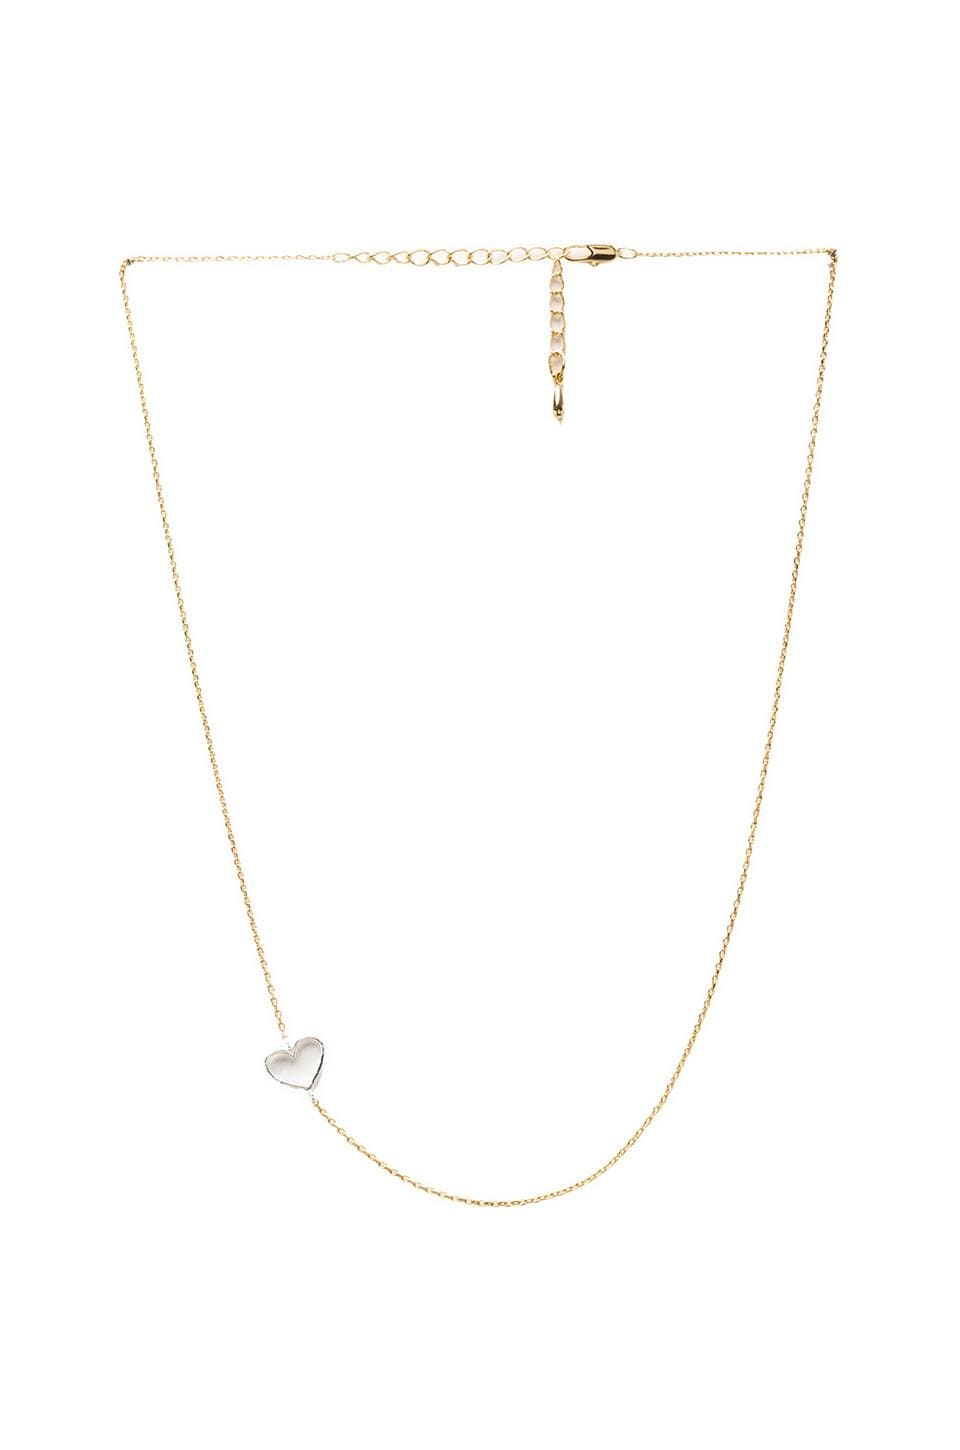 Natalie B Jewelry Natalie B Luv Me Tender Necklace in Gold/Silver